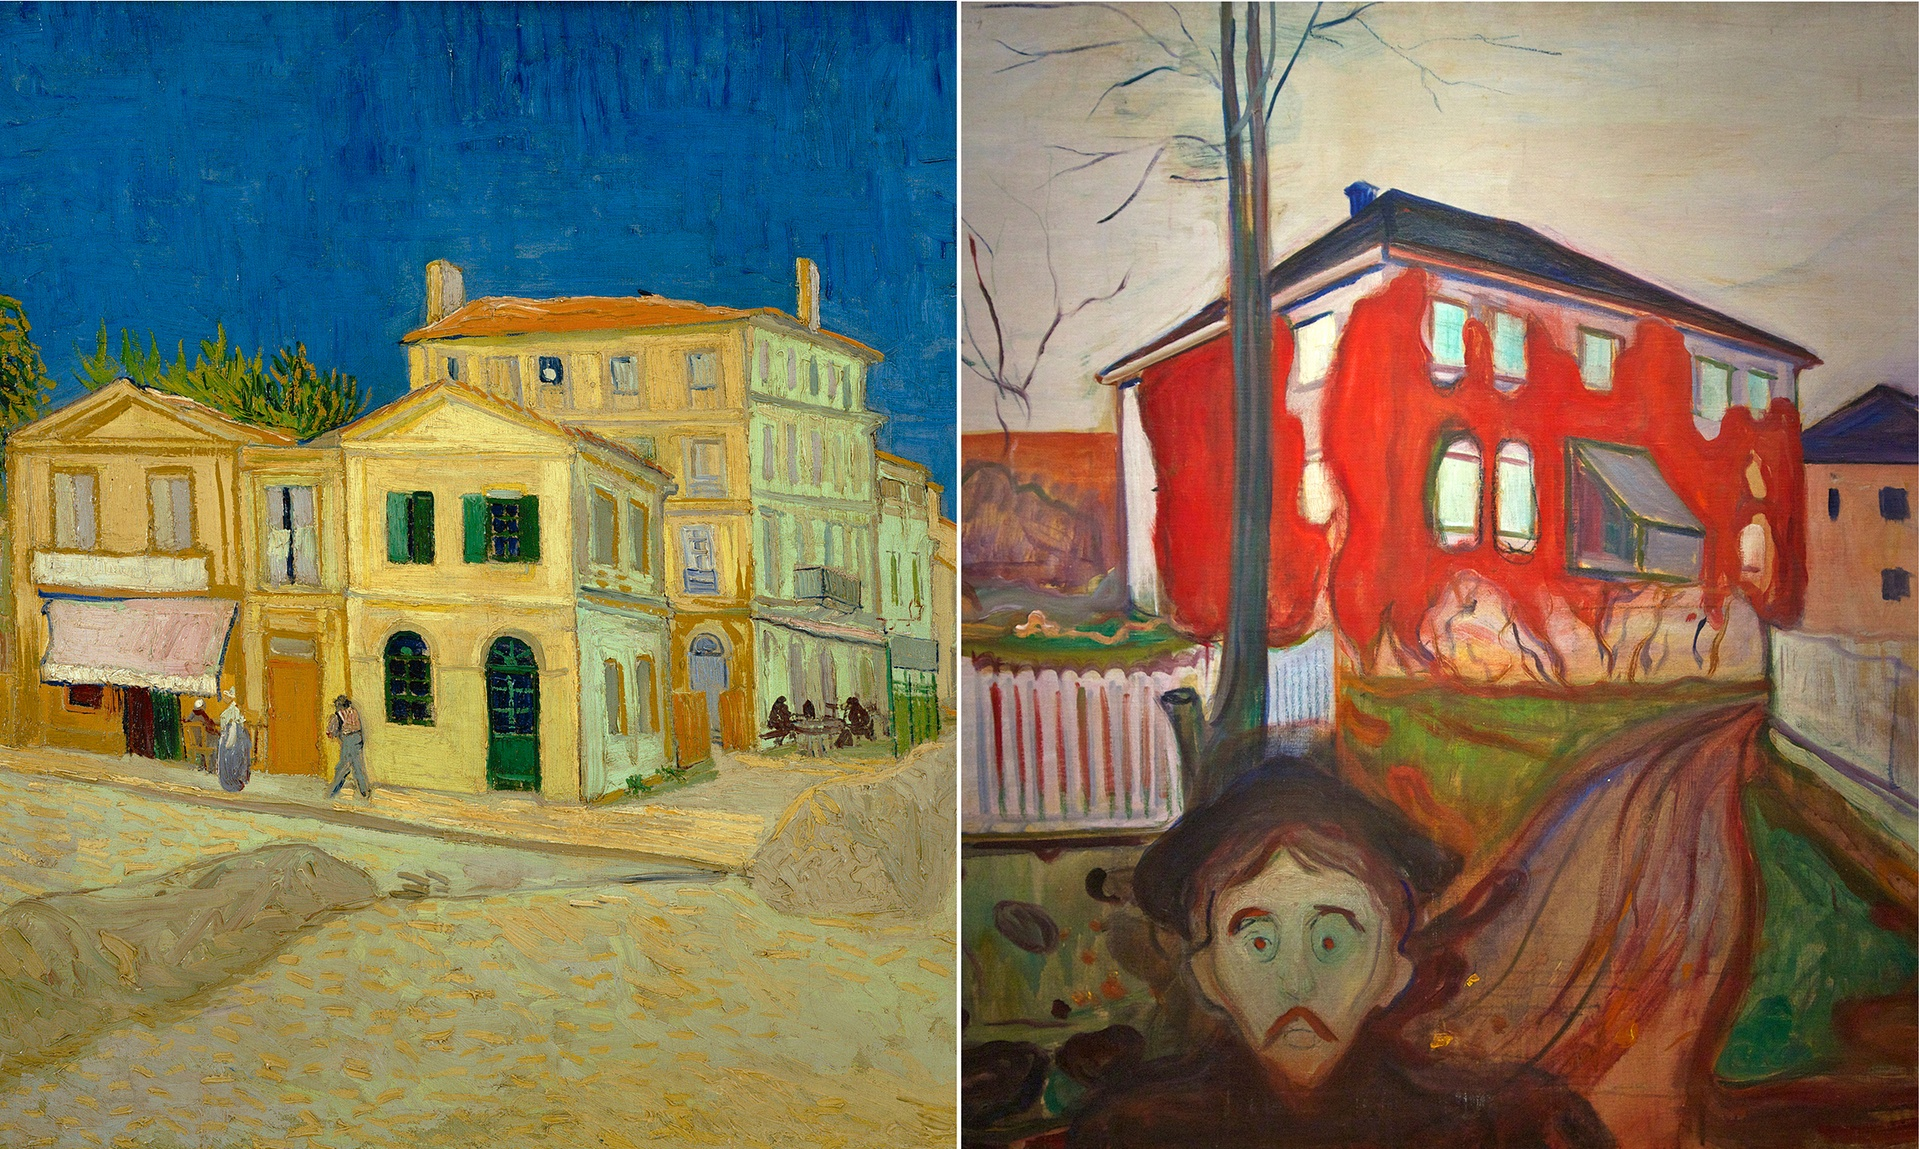 Vincent van Gogh's The Yellow House (1888); and Red Virginia Creeper (1898-1900), by Edvard Munch Photograph: Van Gogh Museum, Amsterdam/ Munch-Museet, Oslo